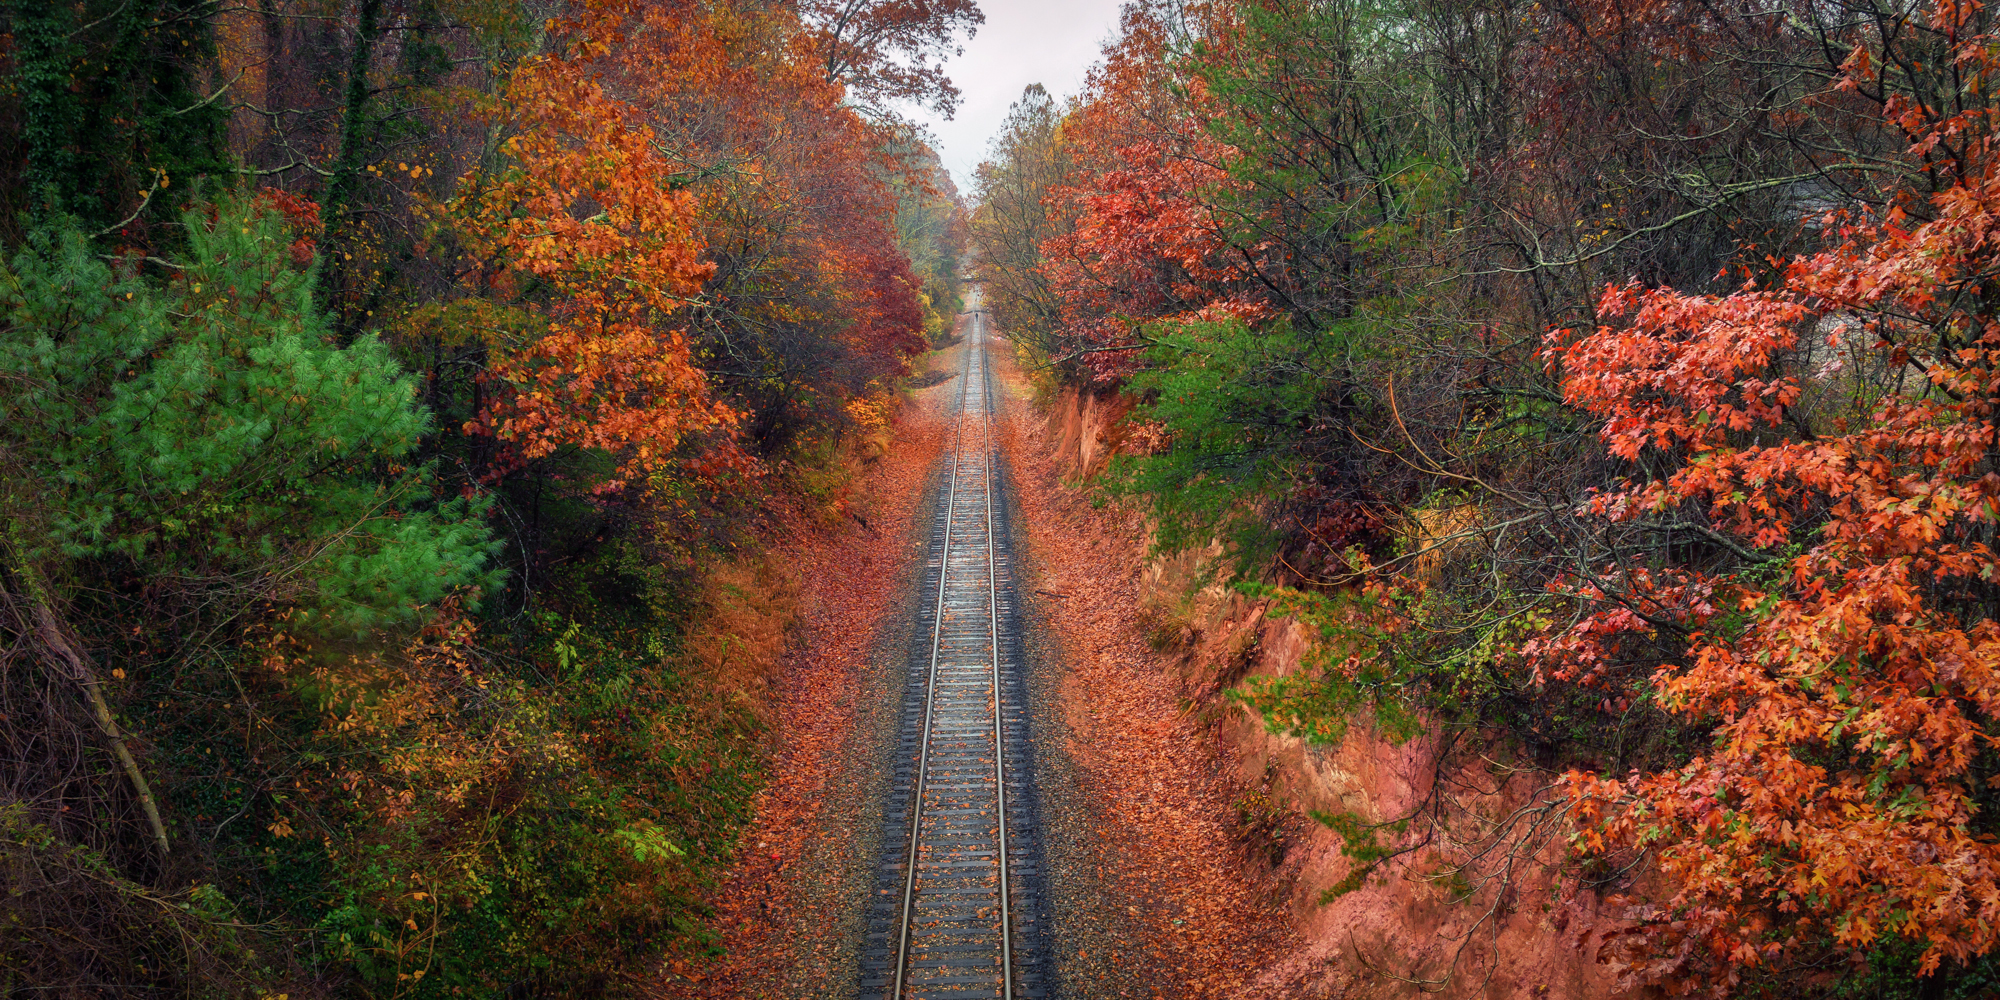 image of asheville railroad